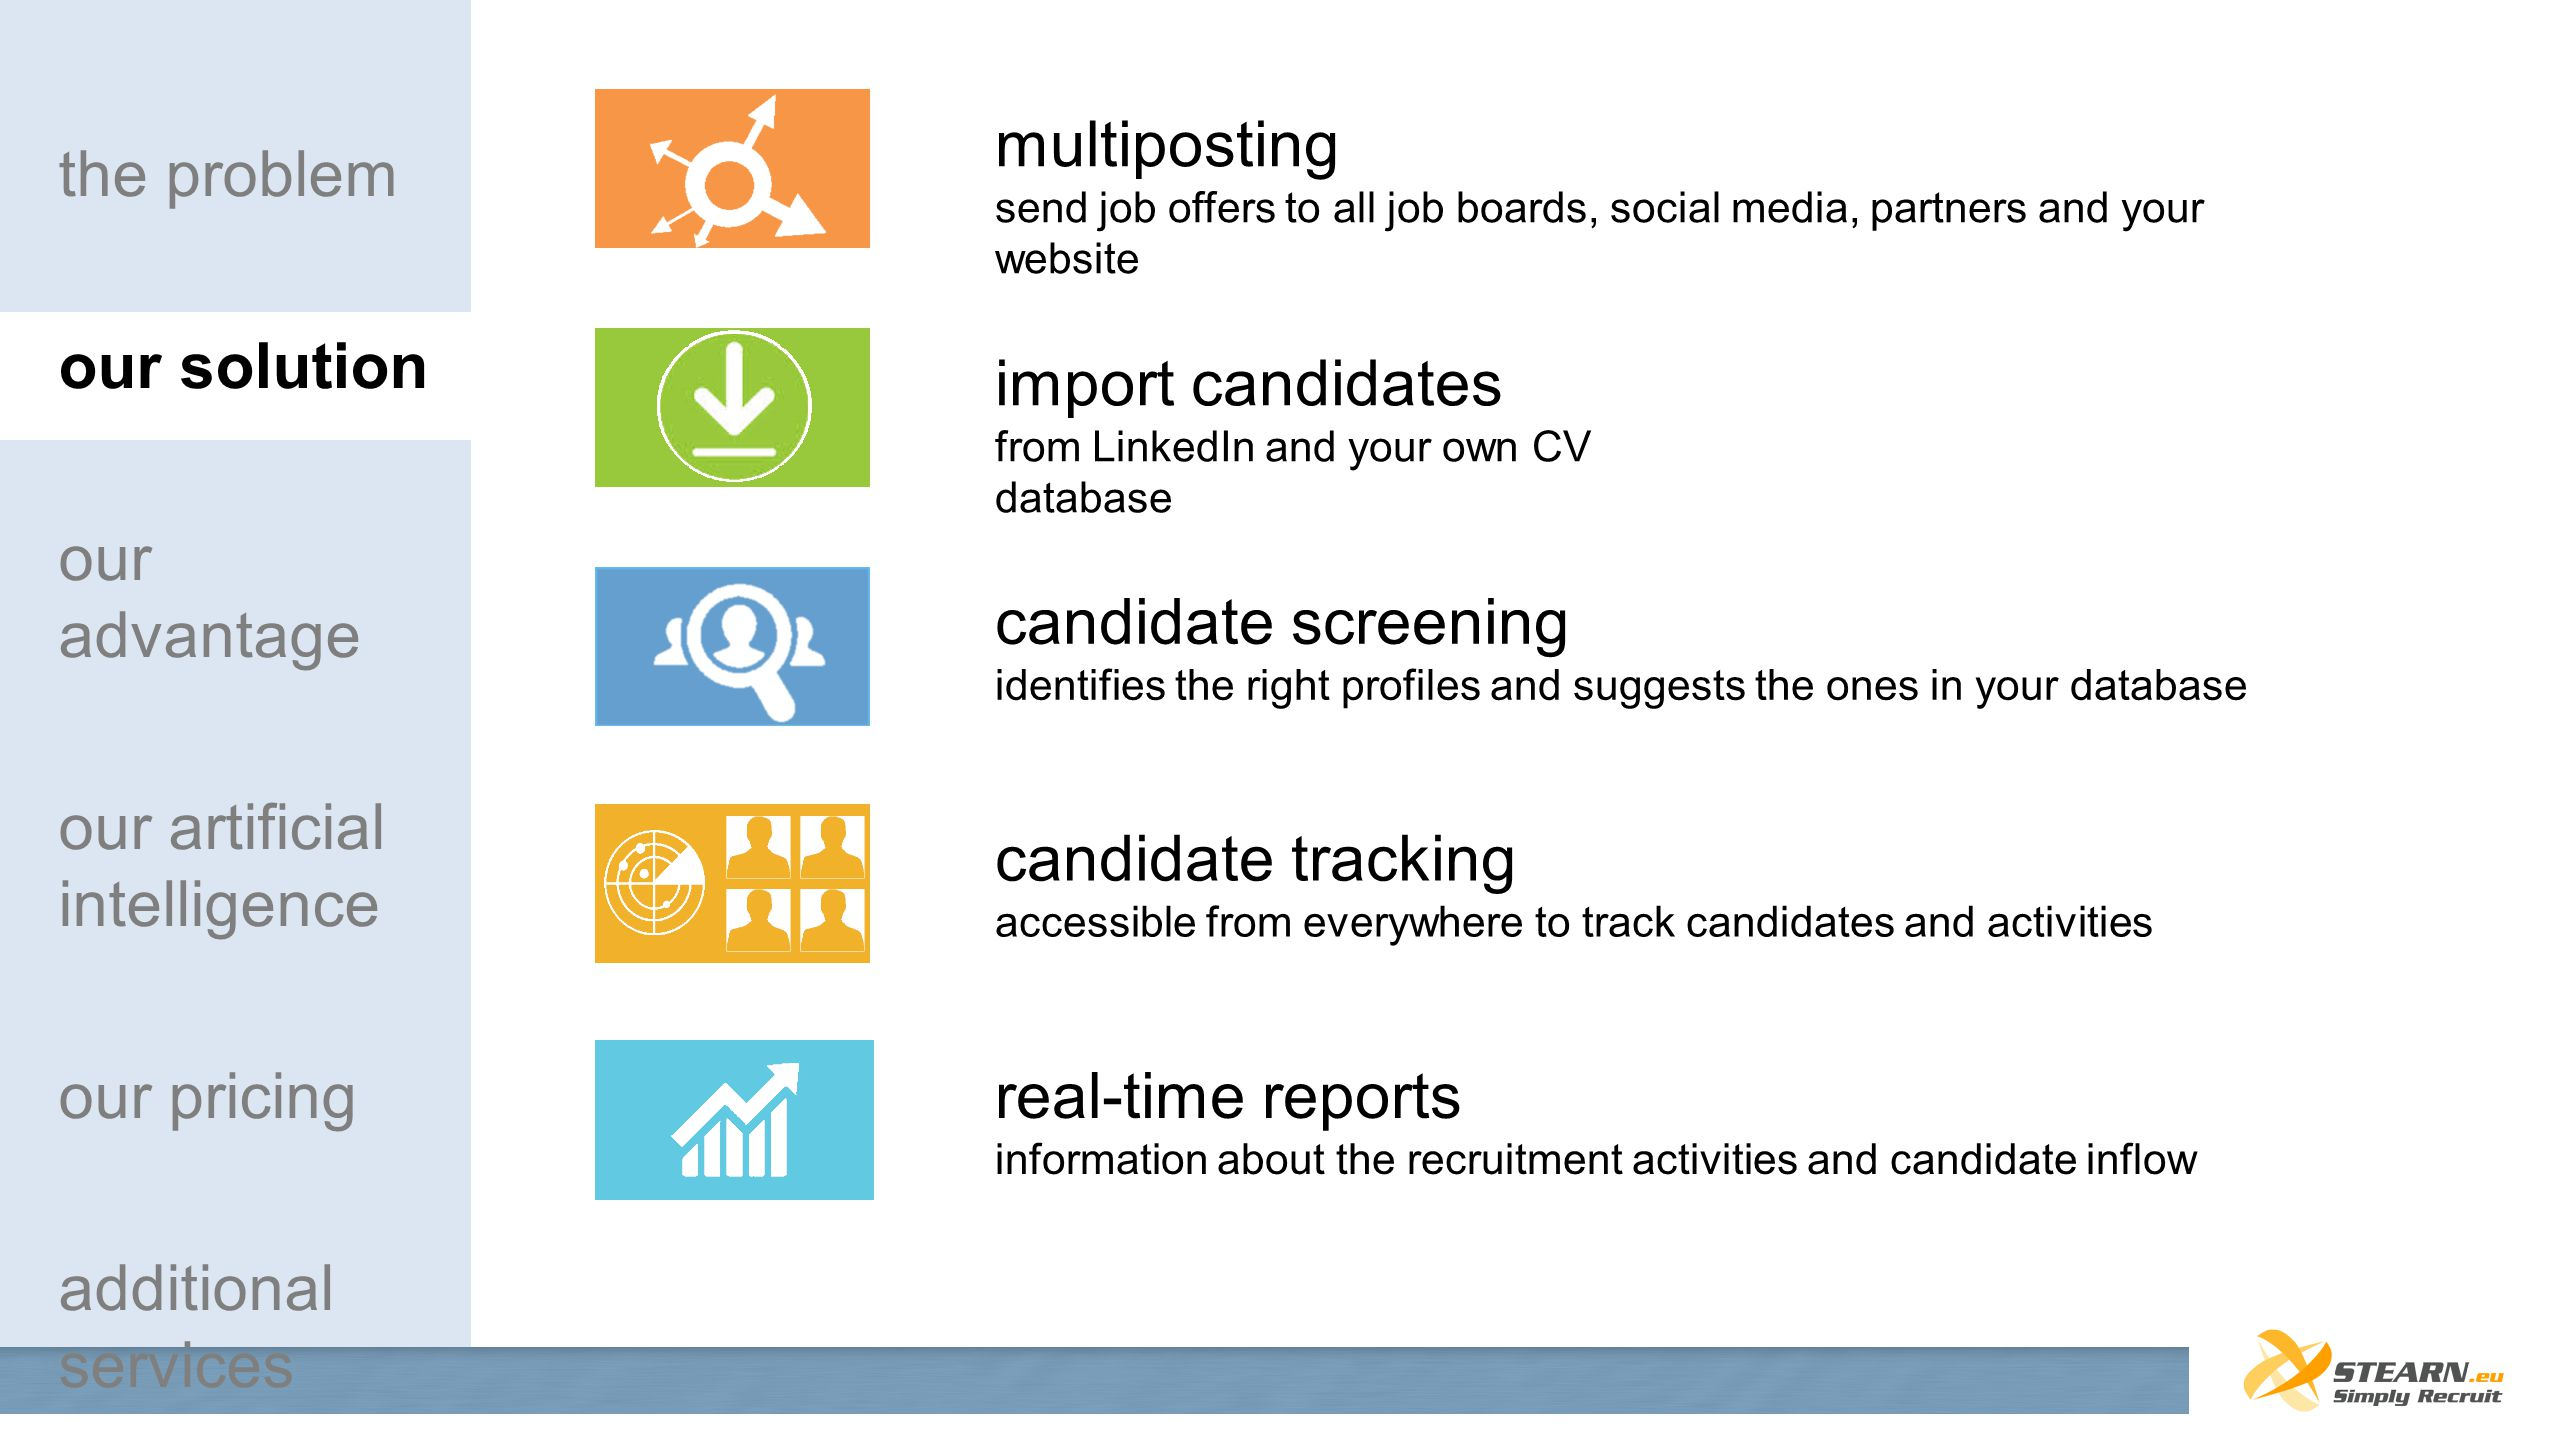 multiposting send job offers to all job boards, social media, partners and your website candidate screening identifies the right profiles and suggests the ones in your database real-time reports information about the recruitment activities and candidate inflow candidate tracking accessible from everywhere to track candidates and activities import candidates from LinkedIn and your own CV database the problem our solution our advantage our artificial intelligence our pricing additional services